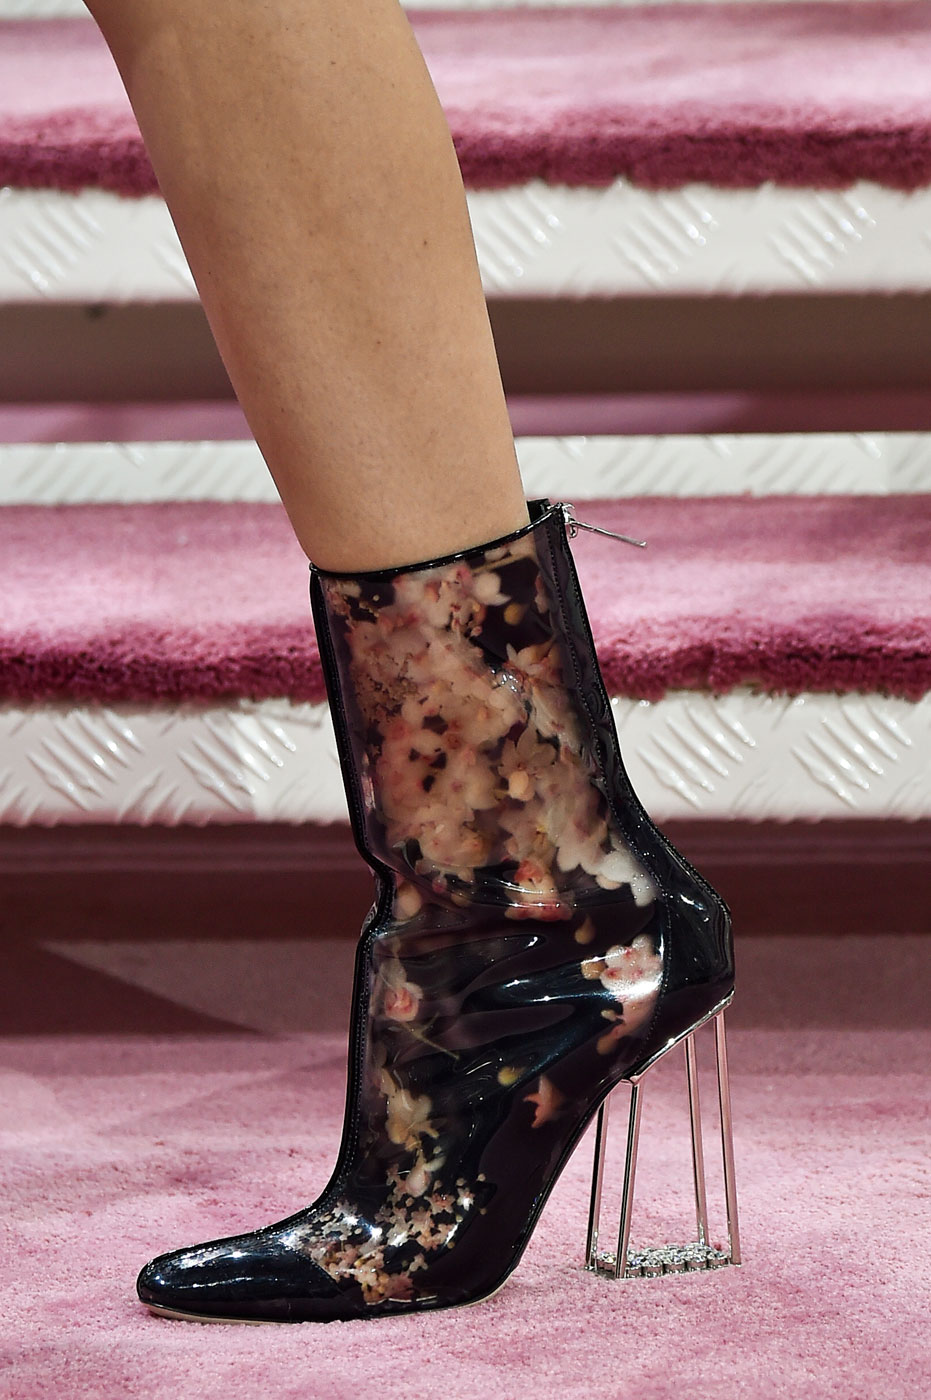 Christian-Dior-fashion-runway-show-close-ups-haute-couture-paris-spring-summer-2015-the-impression-129